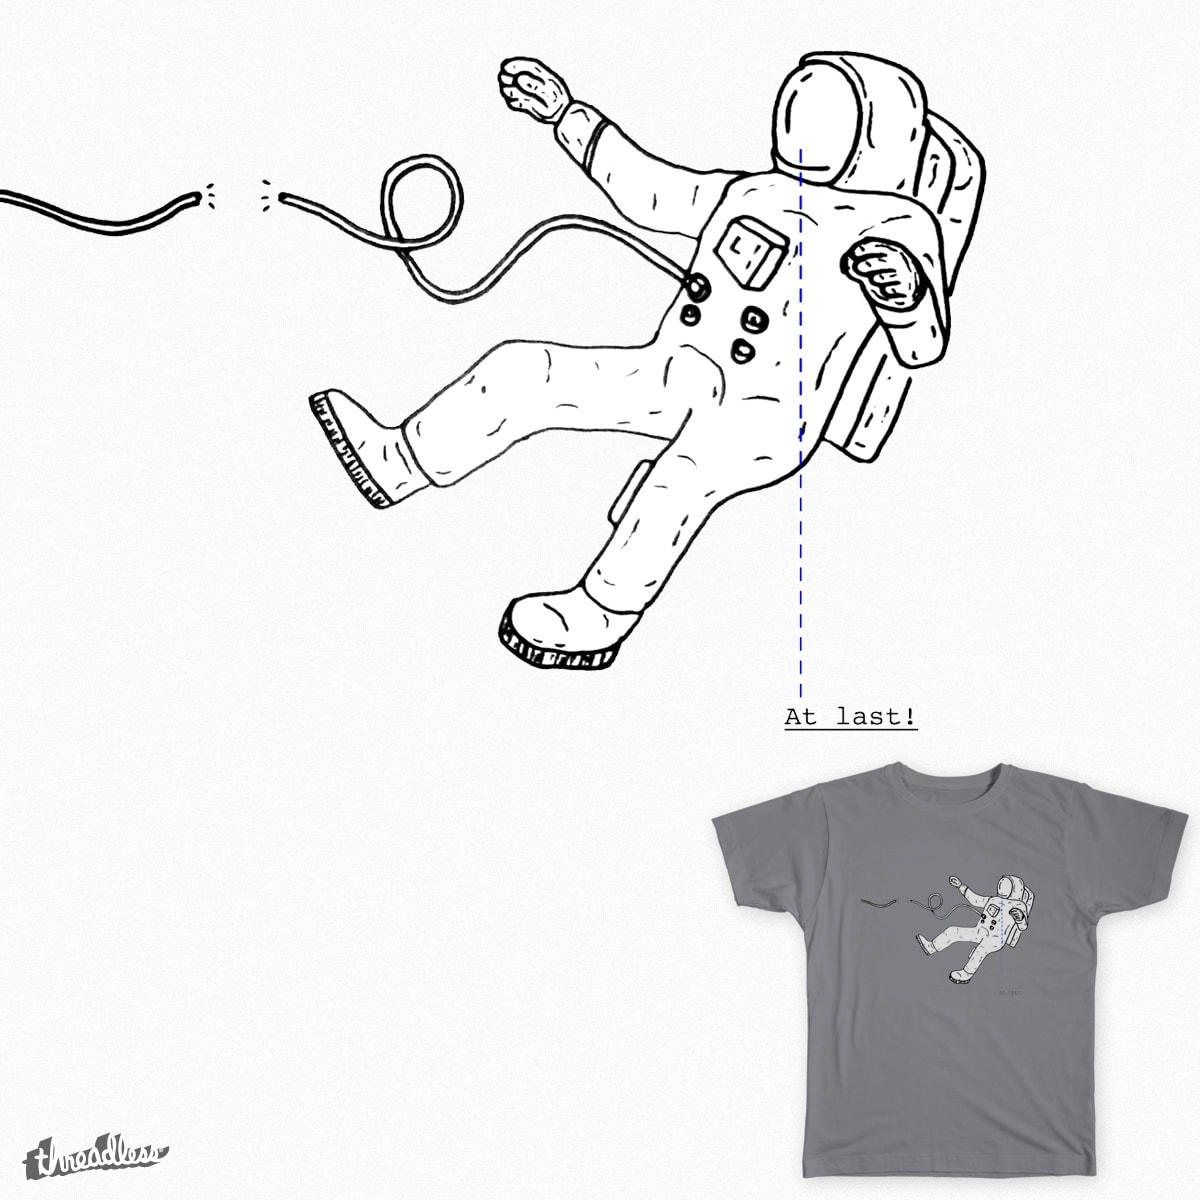 At last! by adolfrodriguez on Threadless